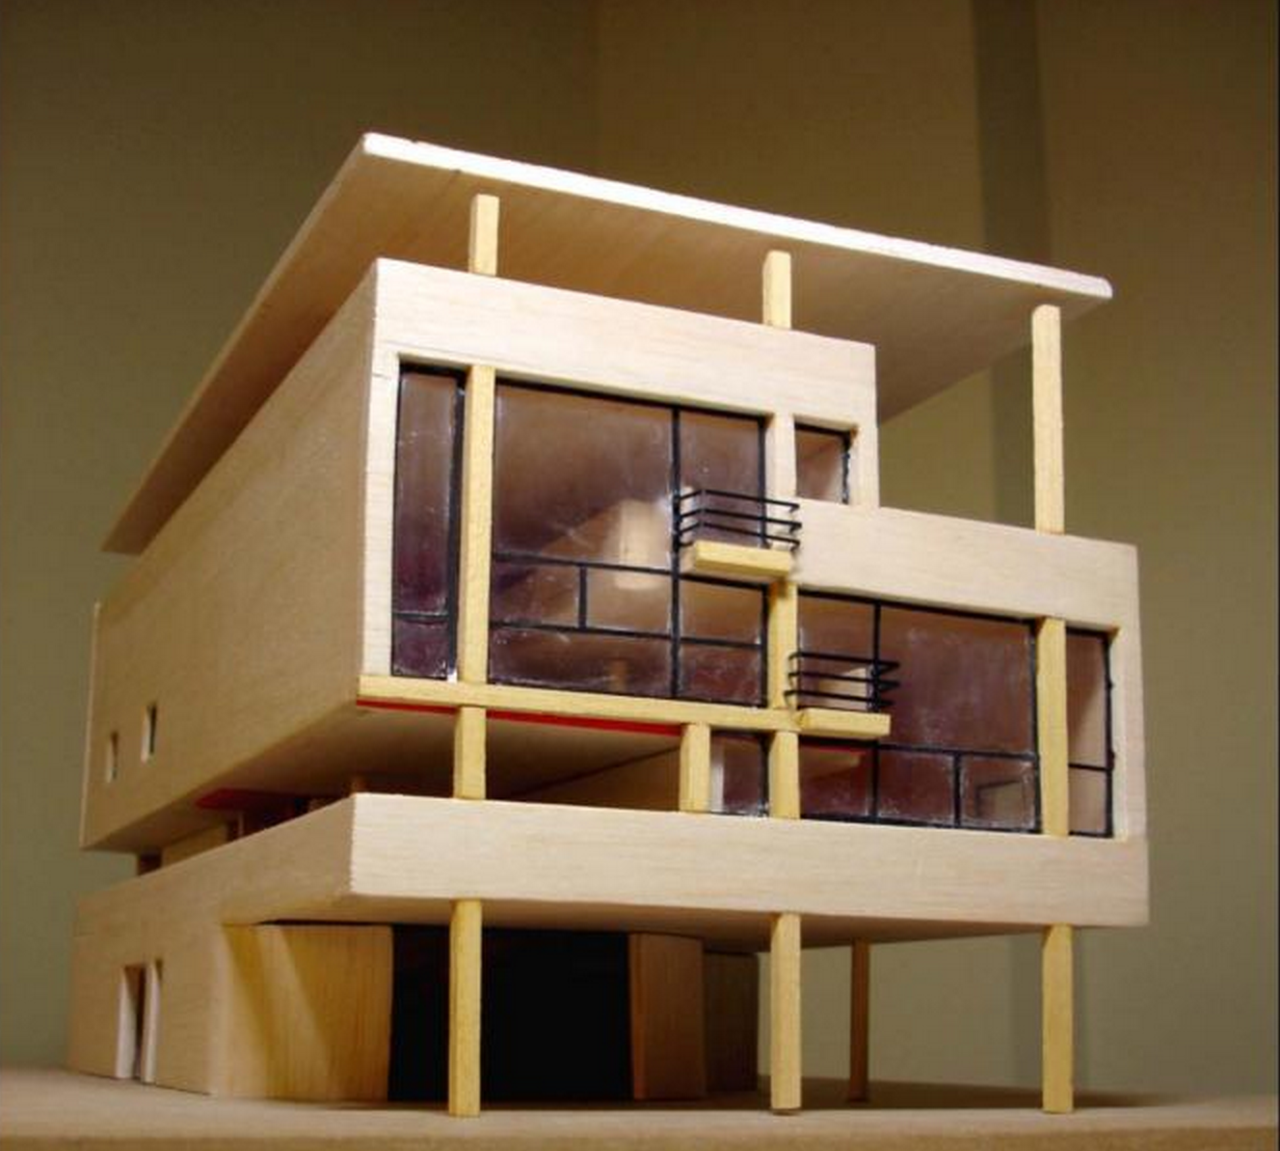 Villa baizeau corbusier architectural models pinterest for Modern house 6x6